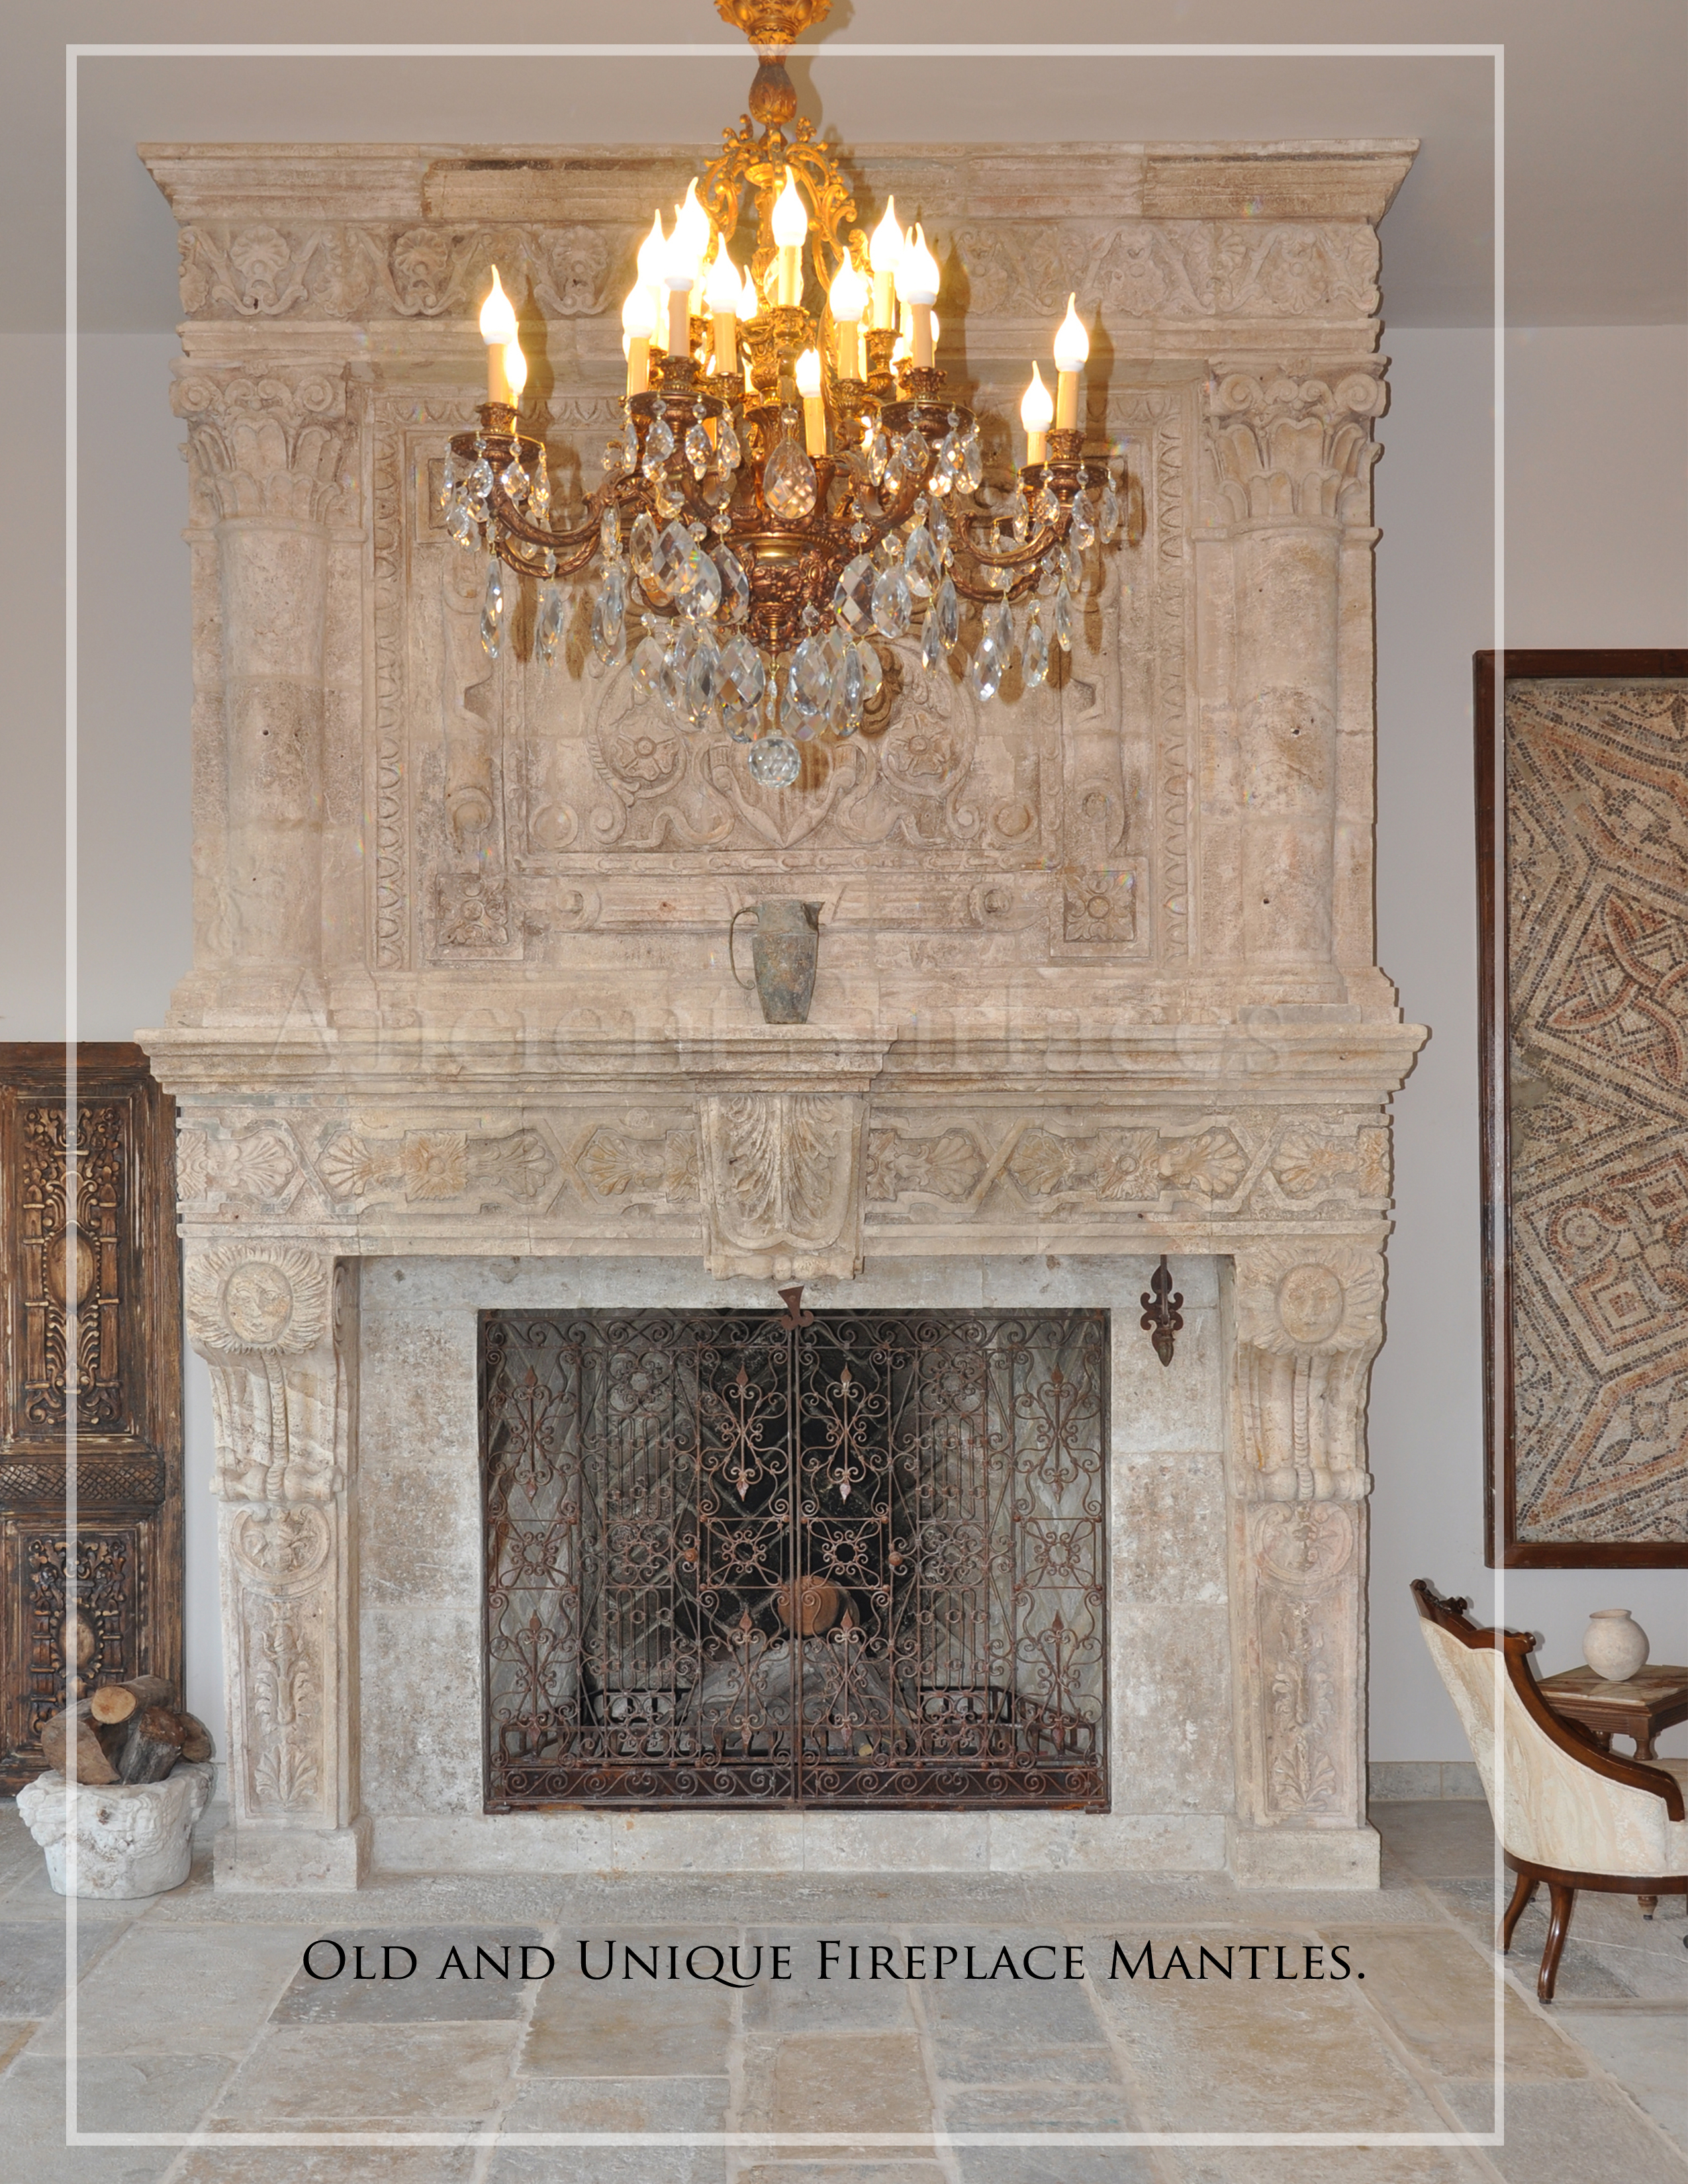 old stone fireplace. One of a kind antique limestone fireplace hundreds years old reclaimed  and restored by hand shipped from Spain to French castle in the Dordogne region stone fireplaces Antique Fireplaces Ancient Surfaces